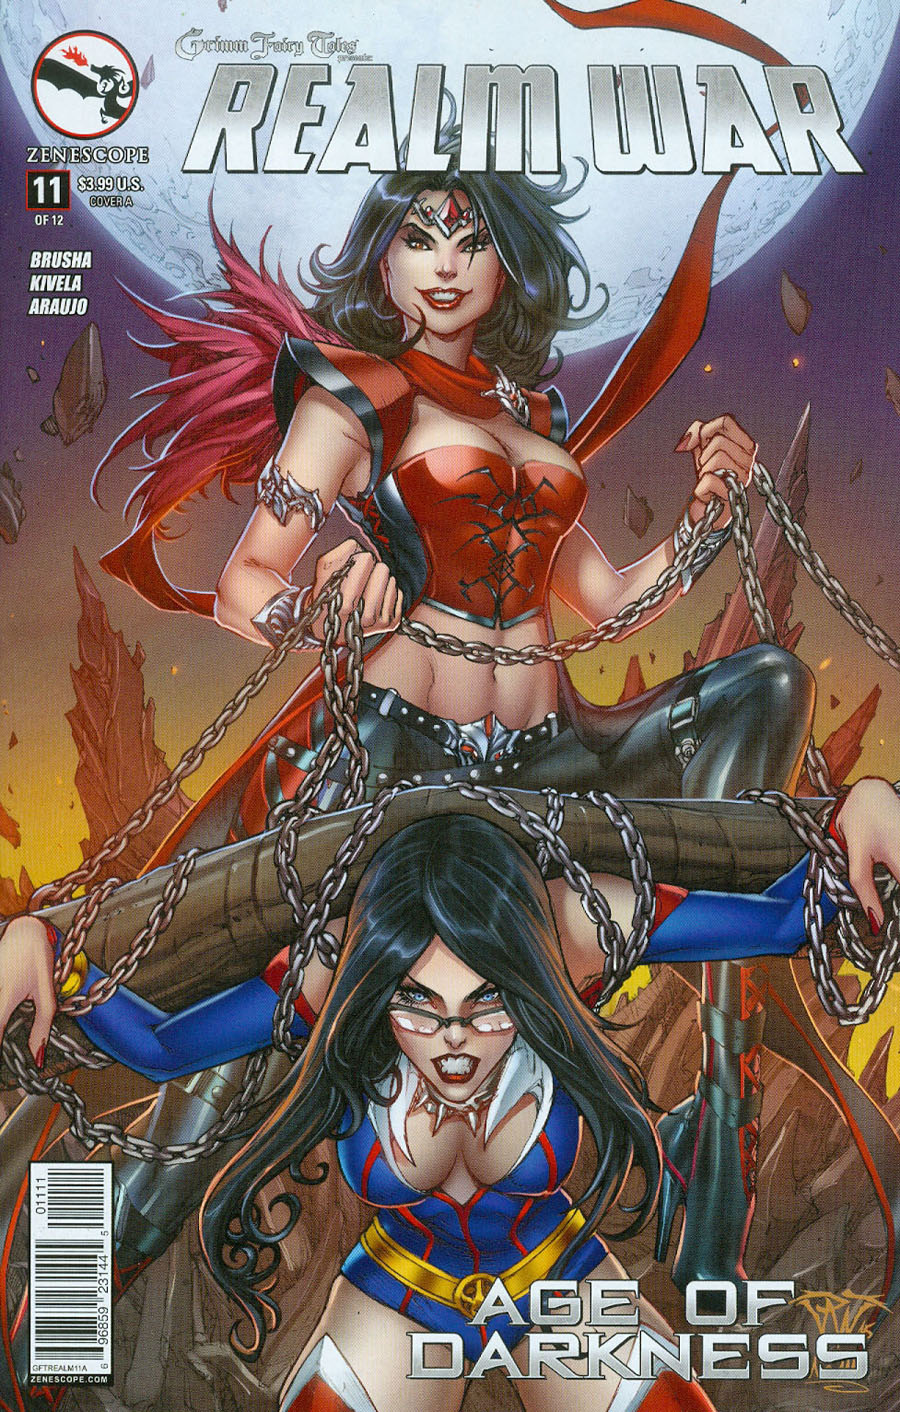 Grimm Fairy Tales Presents Realm War #11 Cover A Paolo Pantalena (Age Of Darkness Tie-In)